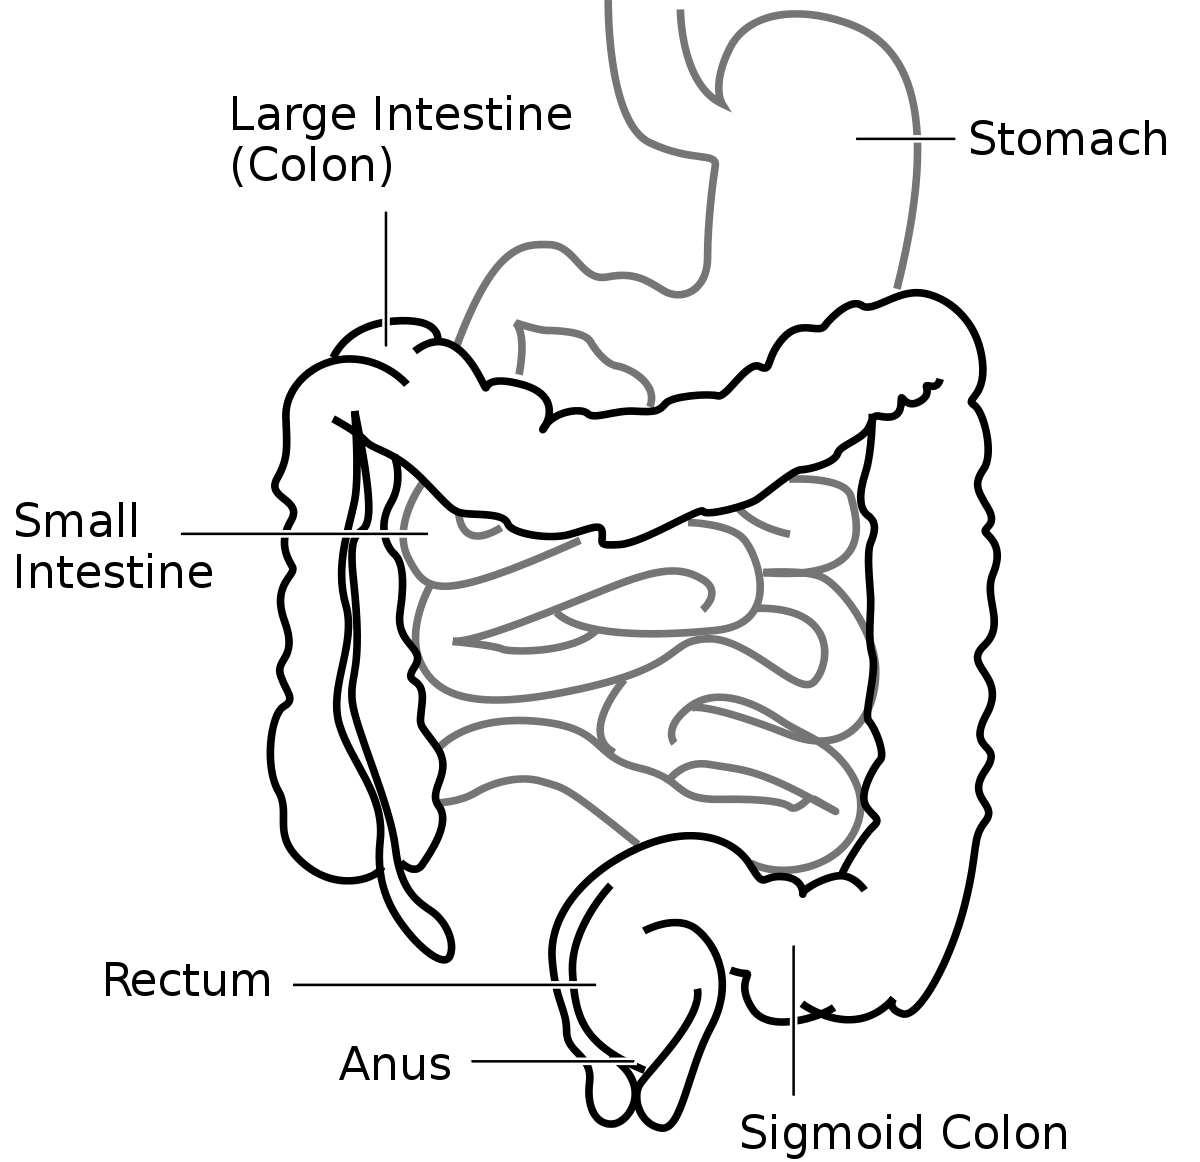 Butthole drawing anatomical. Sigmoid colon function location